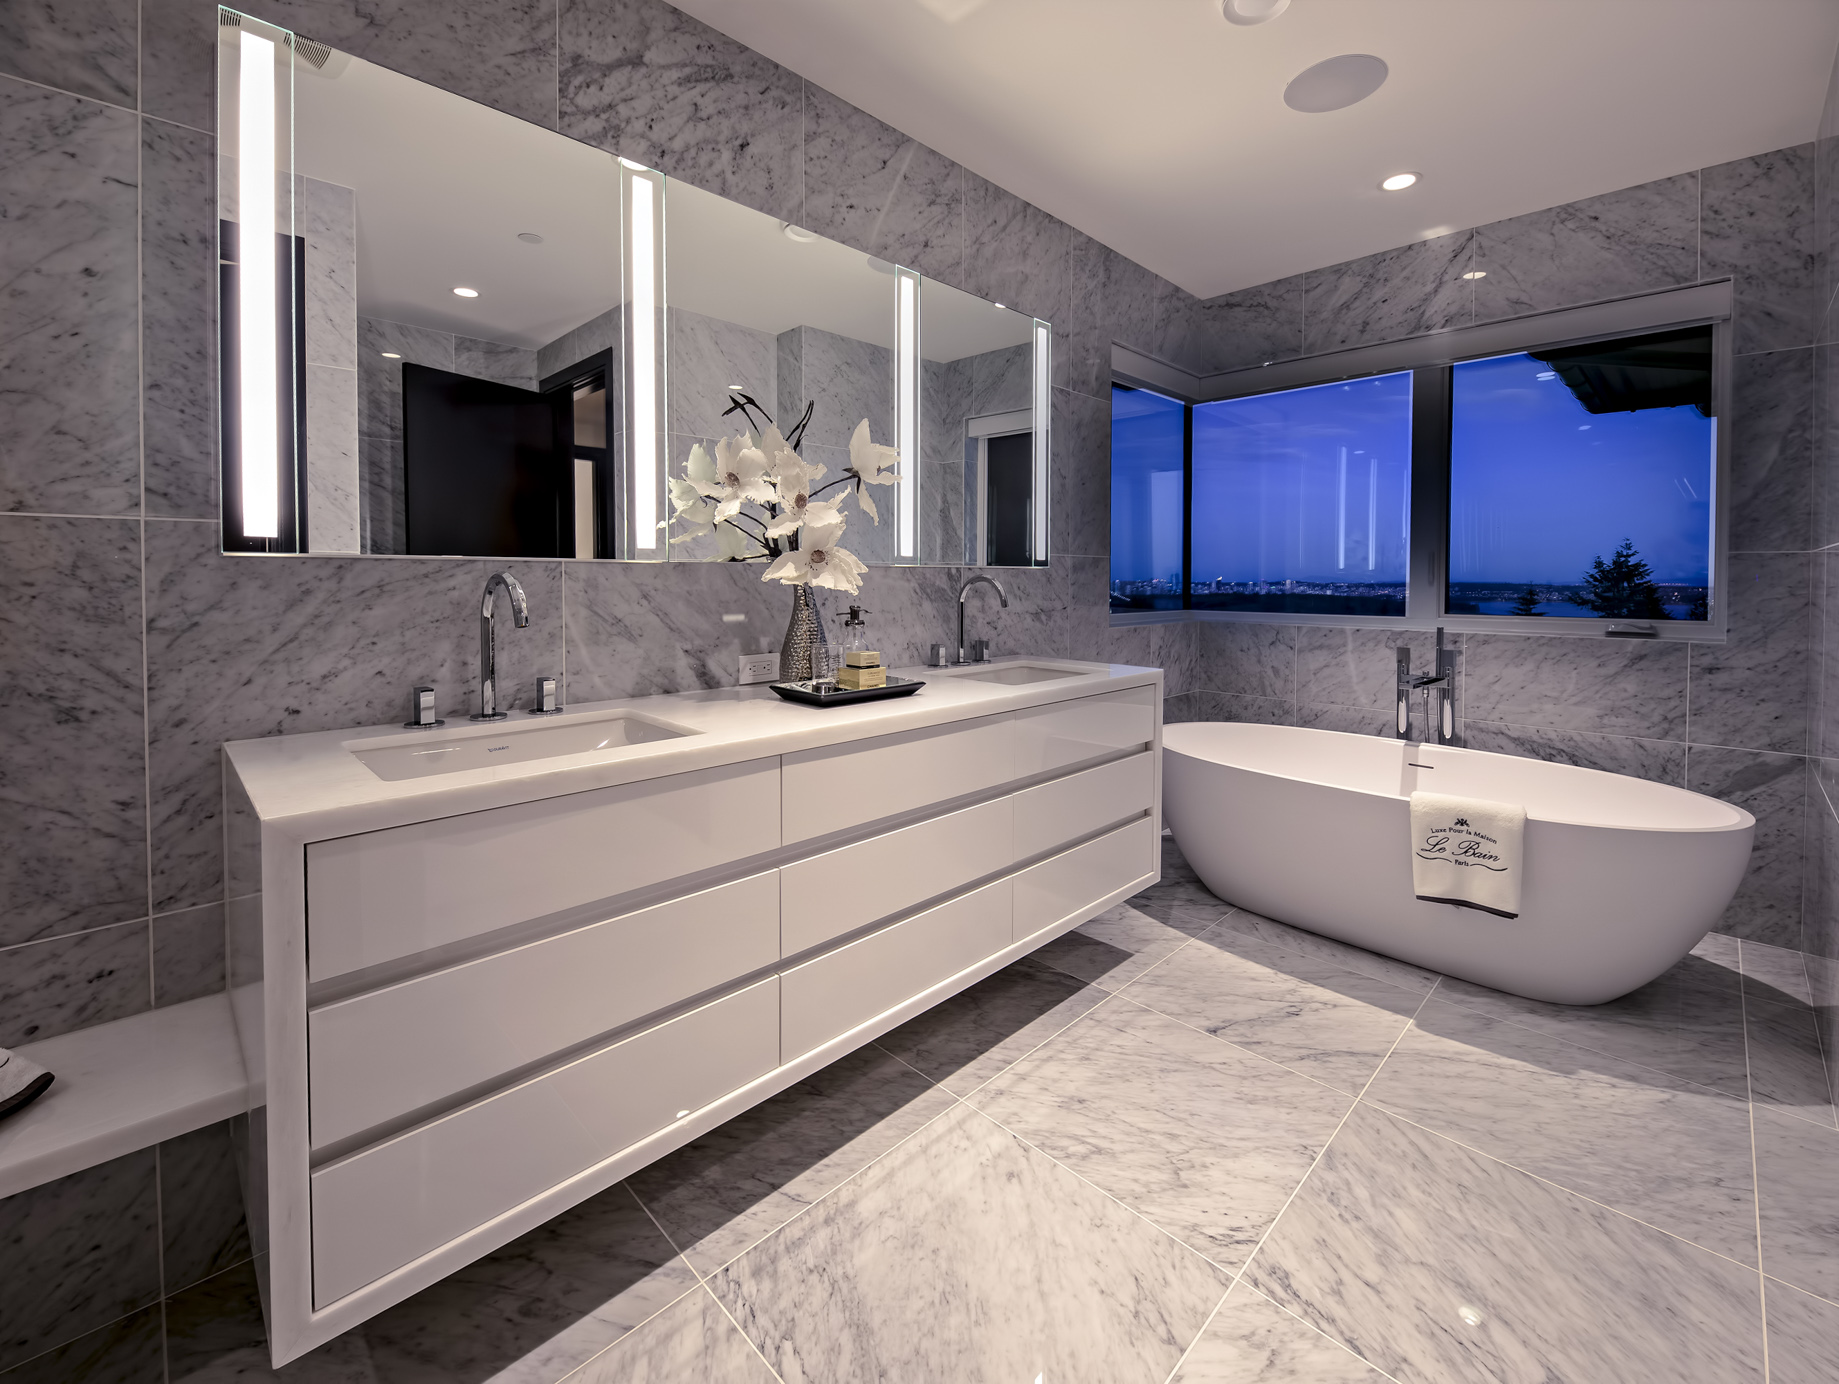 2121 Union Court, West Vancouver, BC, Canada - Master Bathroom - Luxury Real Estate - West Coast Modern Home